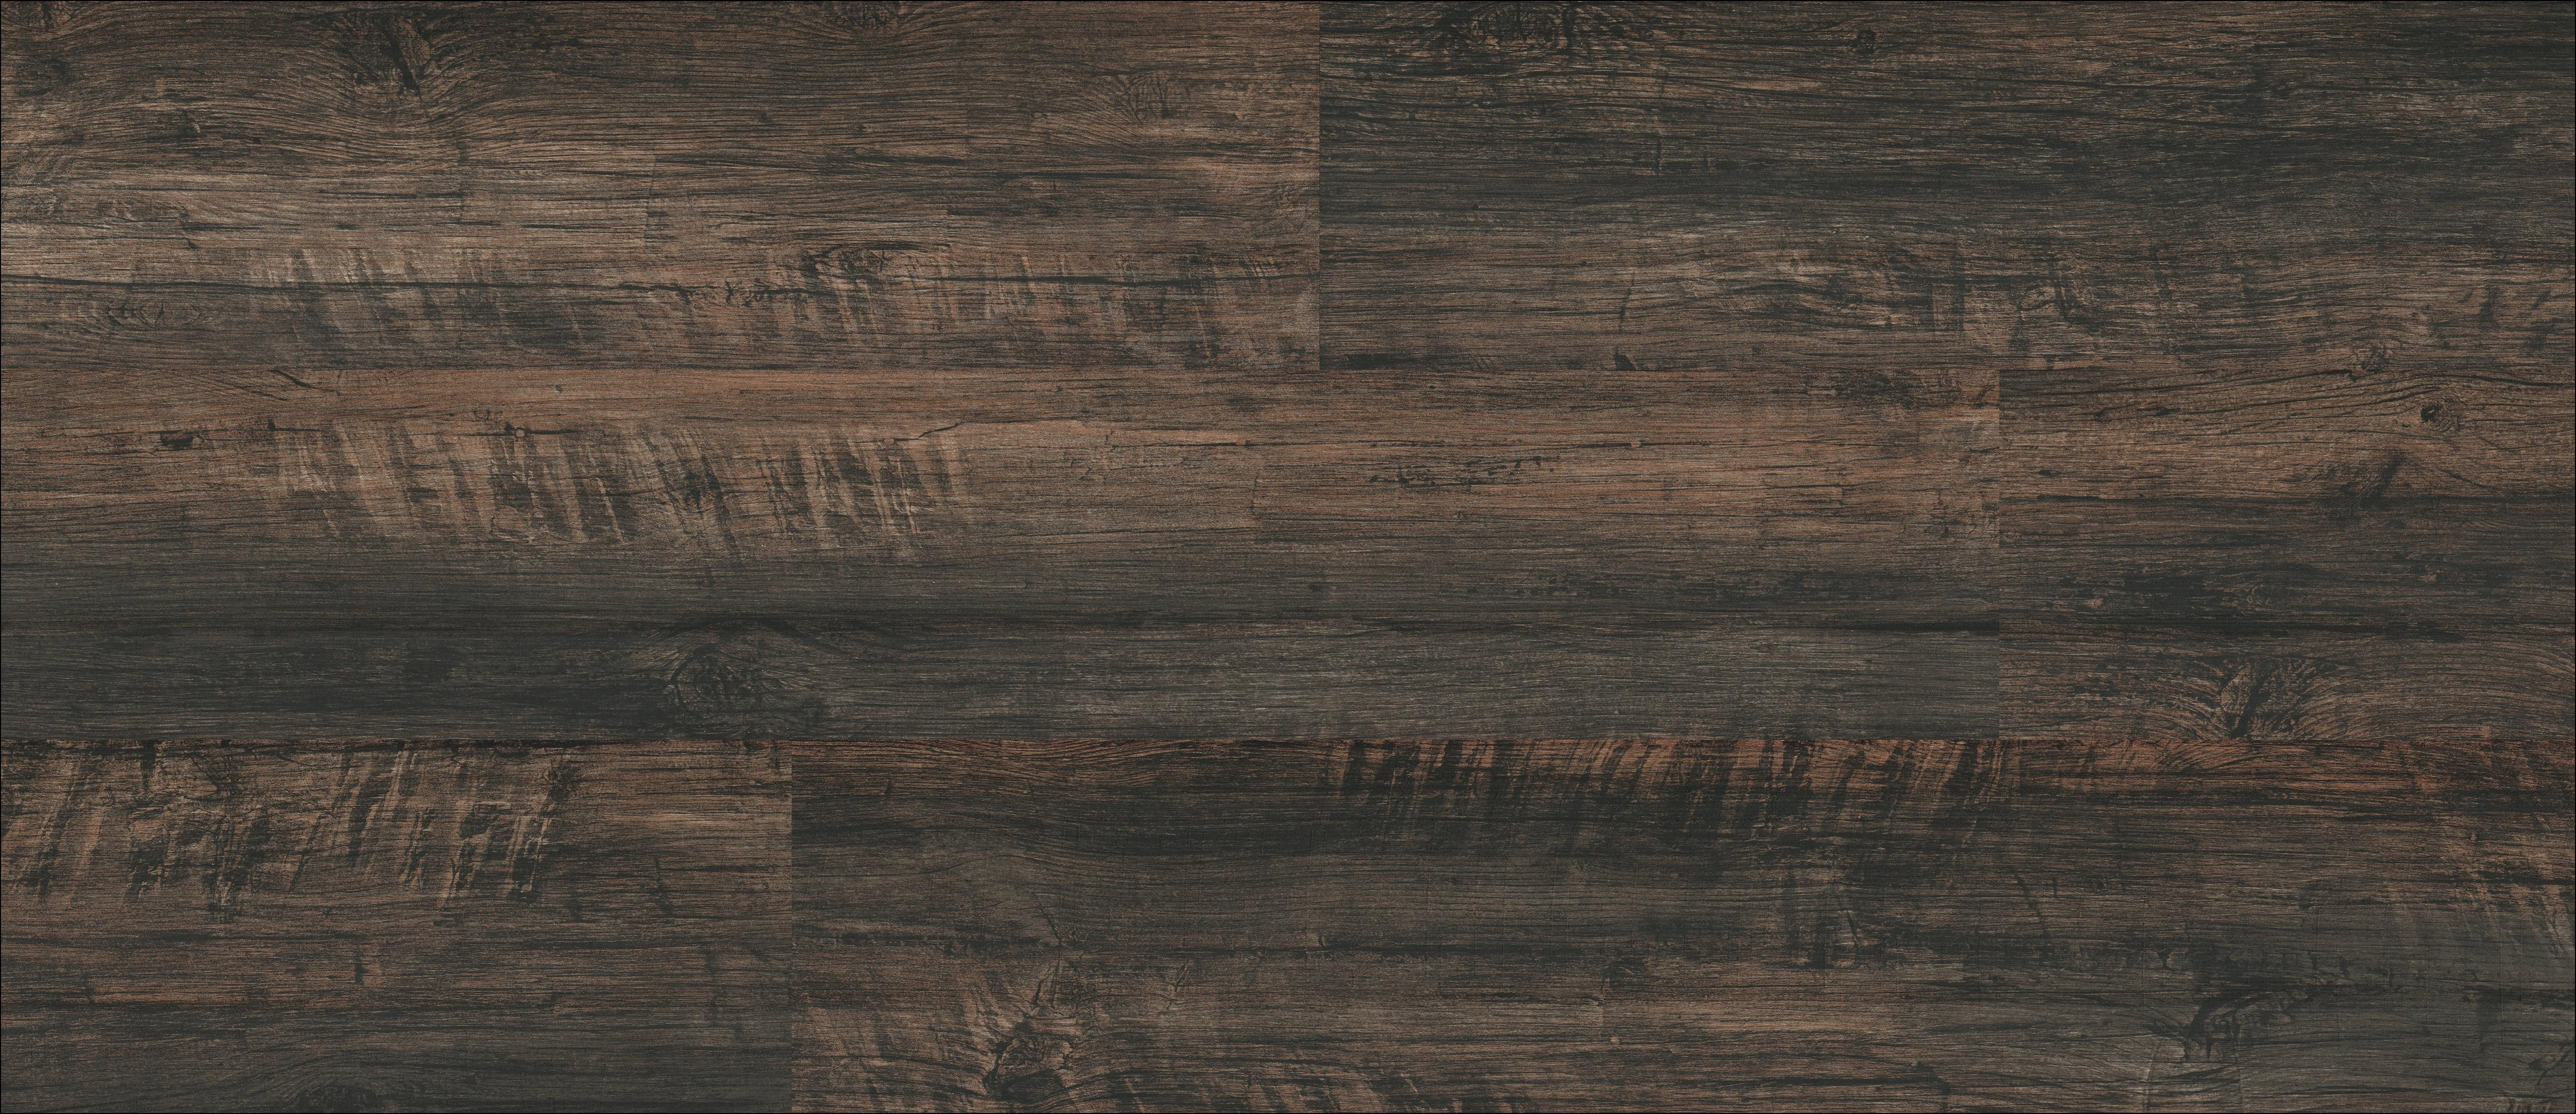 What is Vinyl Hardwood Flooring Of Flooring Ideas Passionate and Affectionate Flooring with Luxury Vinyl Wood Look Flooring Ivc Moduleo Vision Old Rustic Oak 7 56 Luxury Vinyl